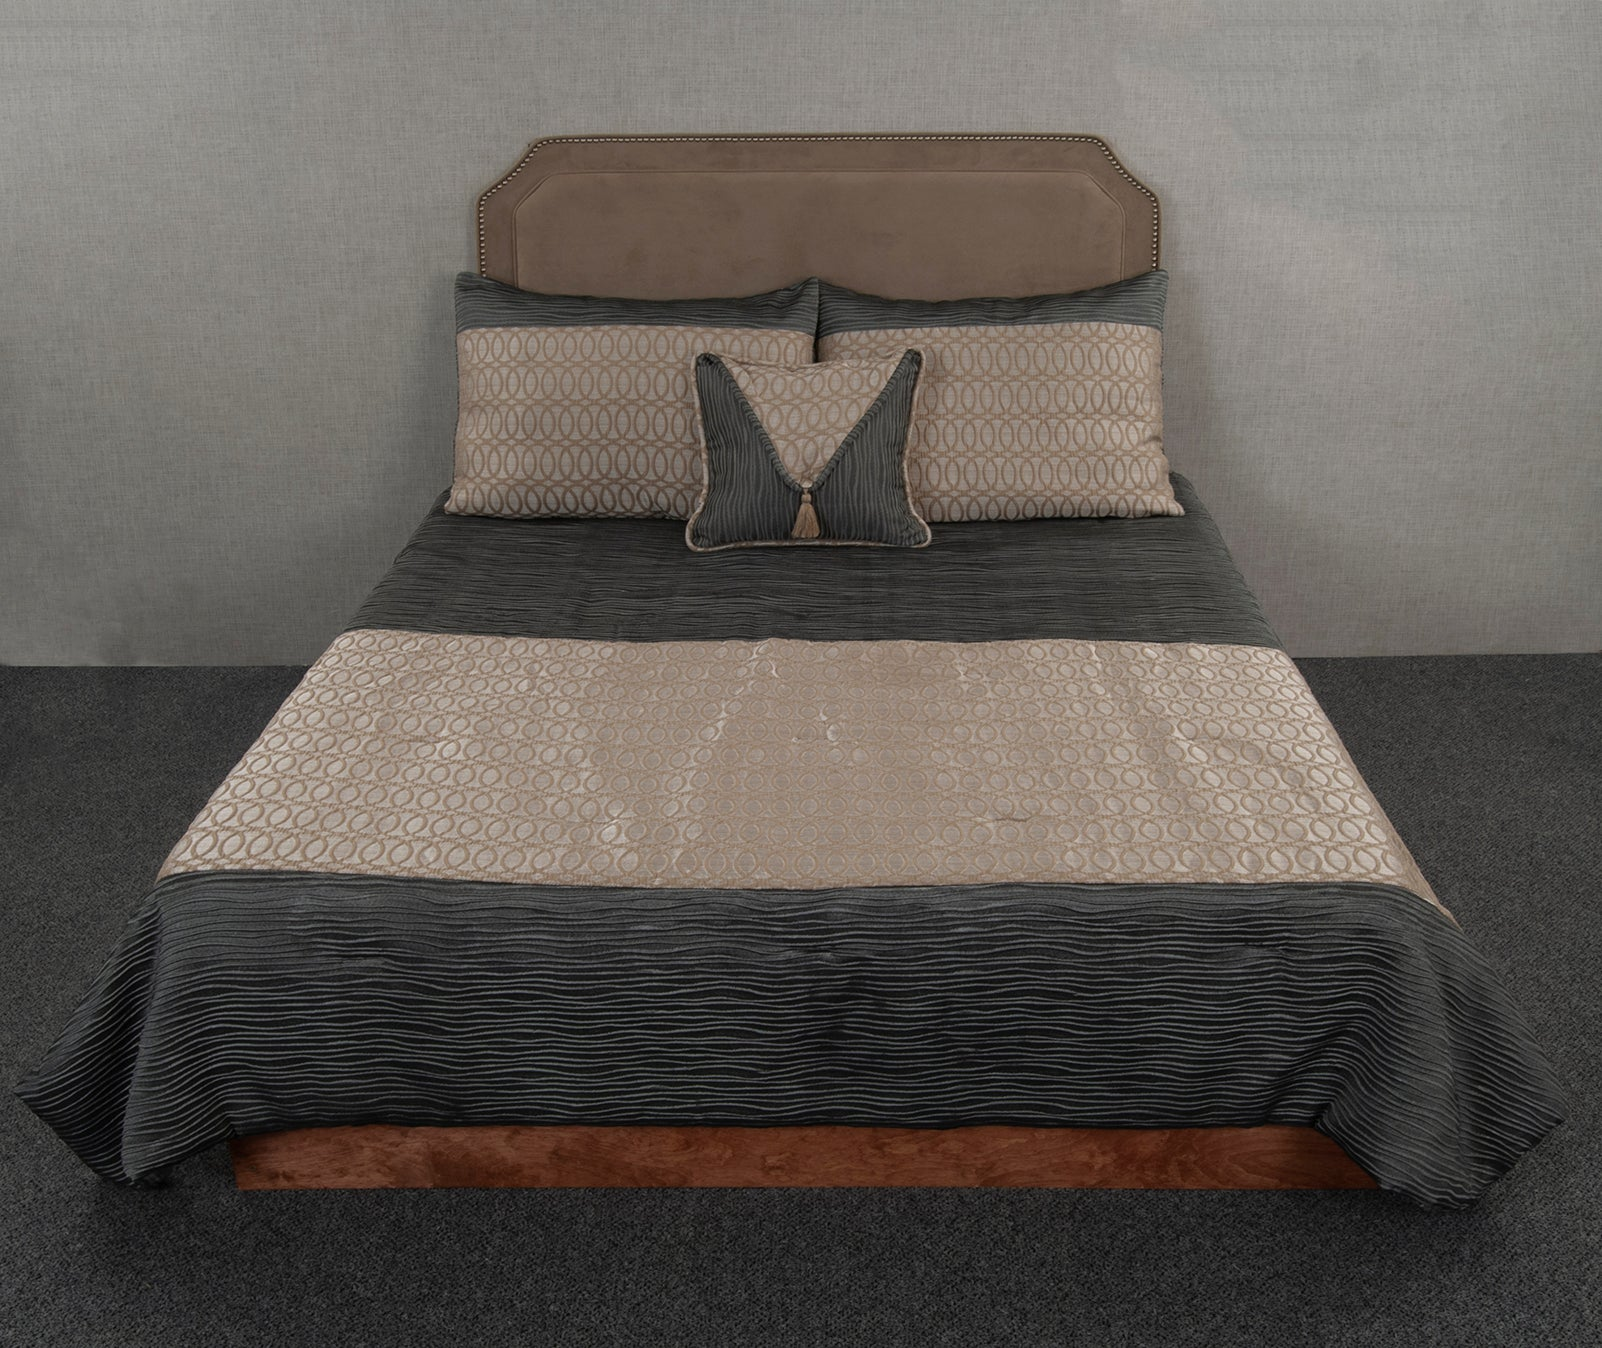 Tinsley Tan & Aster Slate Throw Style Bedspread